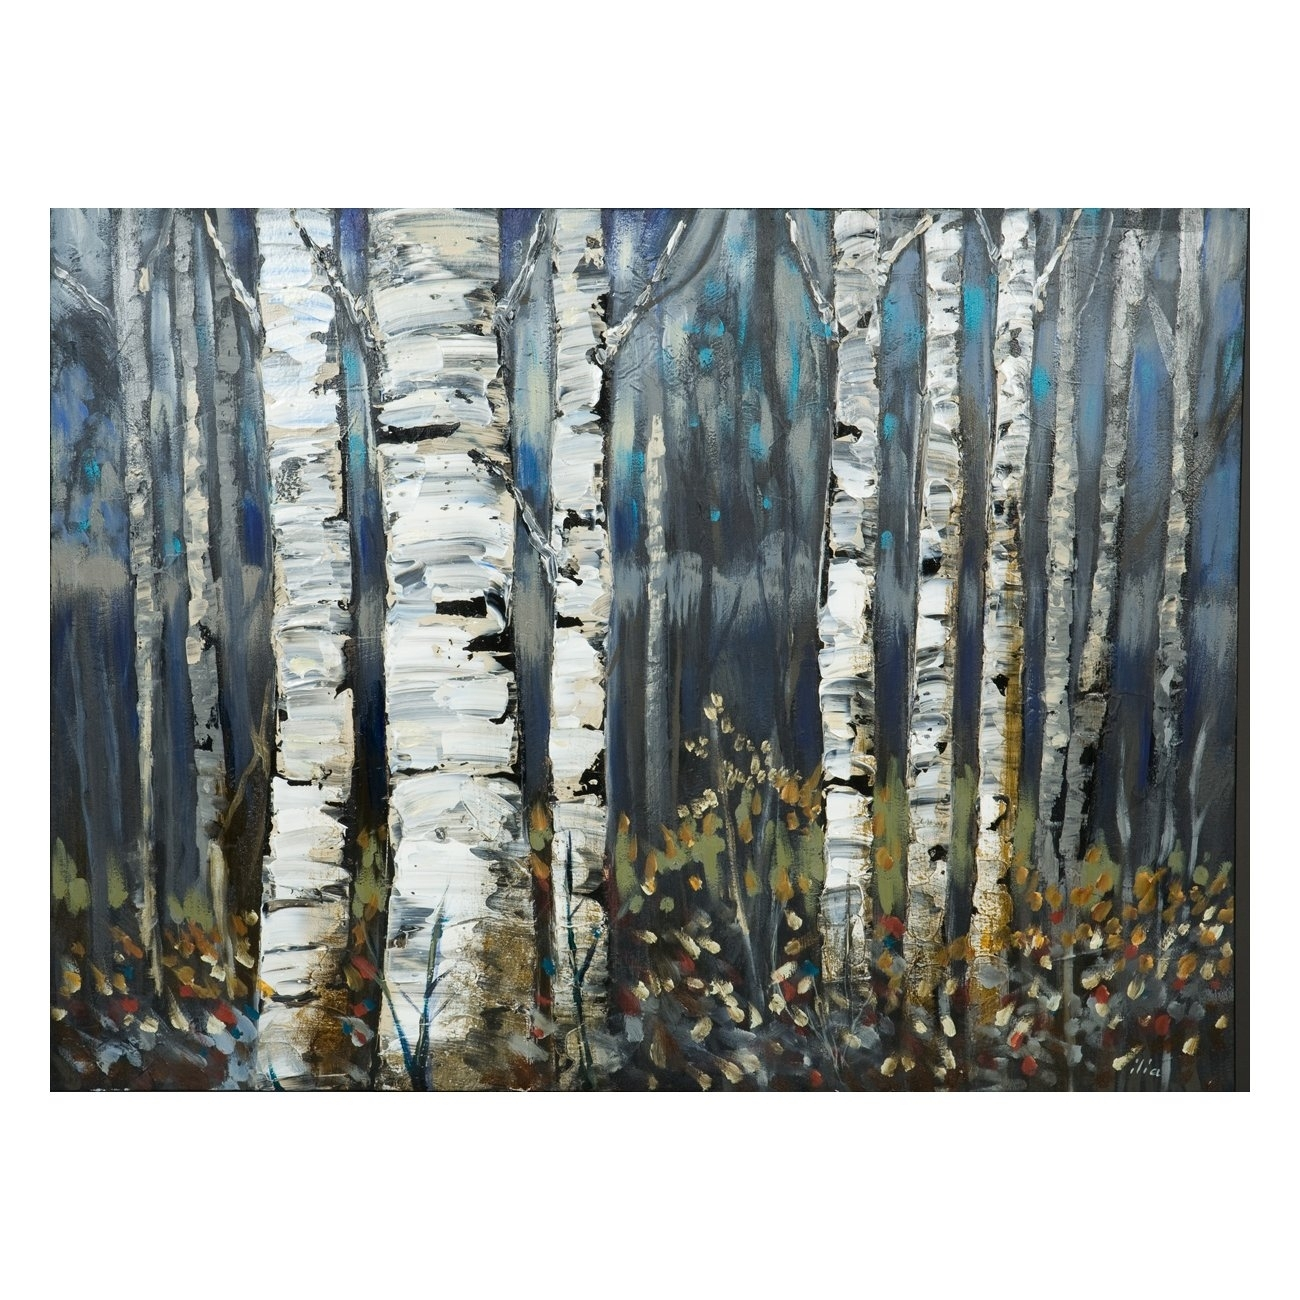 Laila's Ili142 11F Birch Trees Canvas Art | Lowe's Canada Intended For Most Recently Released Birch Trees Canvas Wall Art (View 9 of 15)